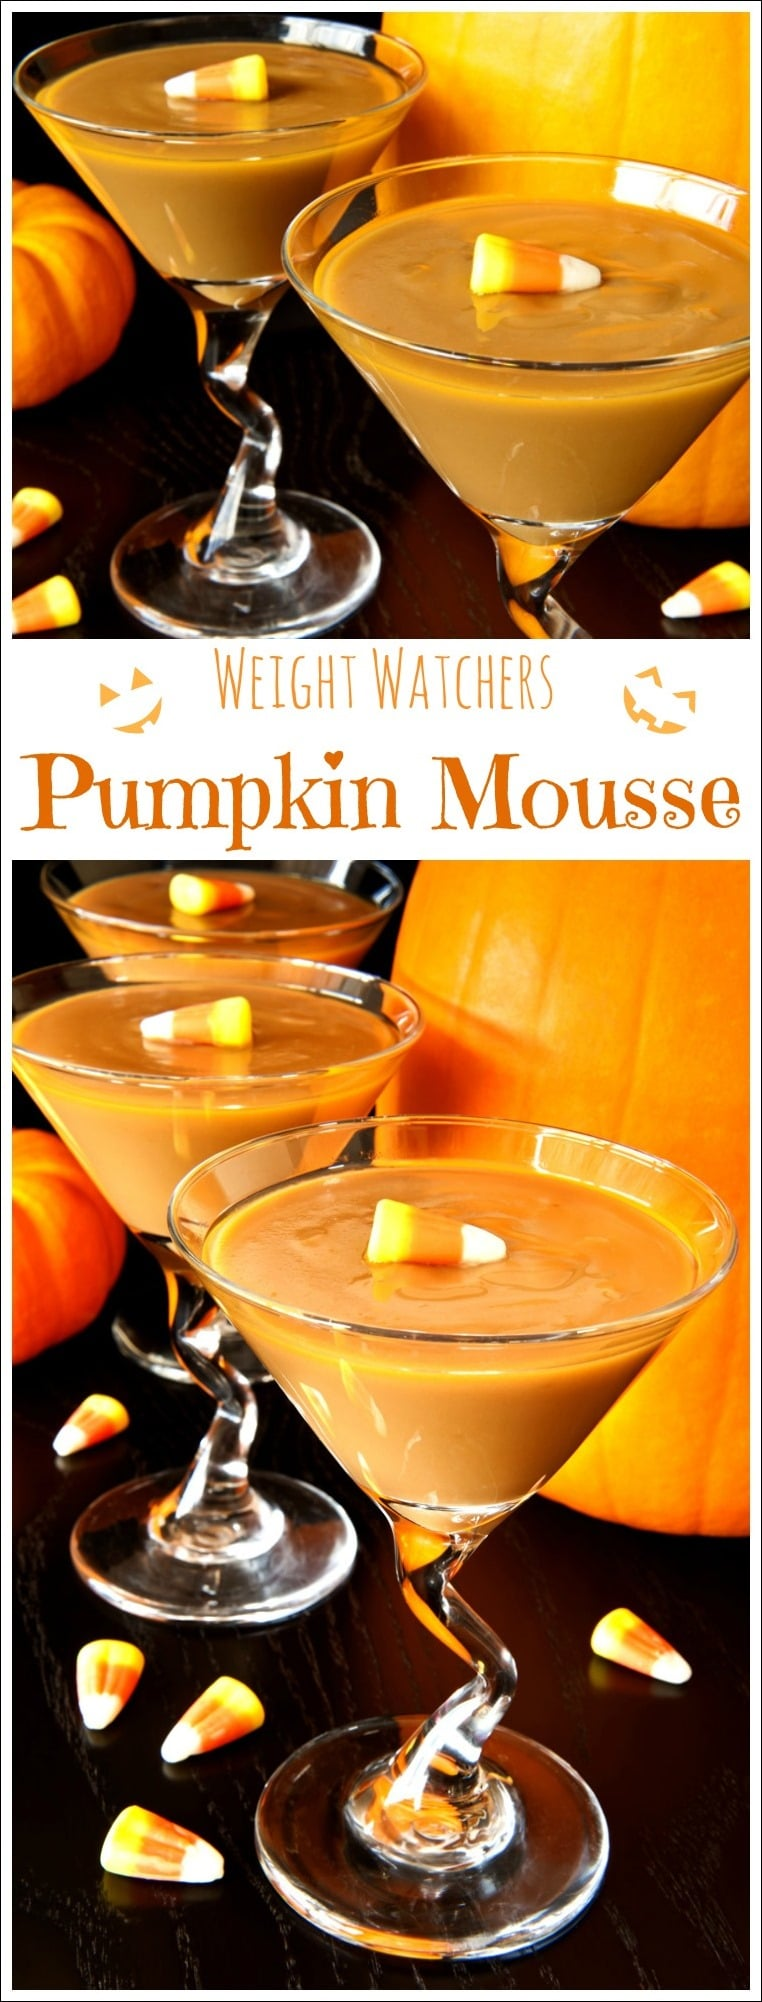 Are you looking for THE Weight Watchers Pumpkin Mousse dessert recipe? This is the one that your leader discussed in your meeting! Get this low POINTS dessert recipe? Try this Weight Watchers Pumpkin Mousse recipe at This Mama Cooks! On a Diet